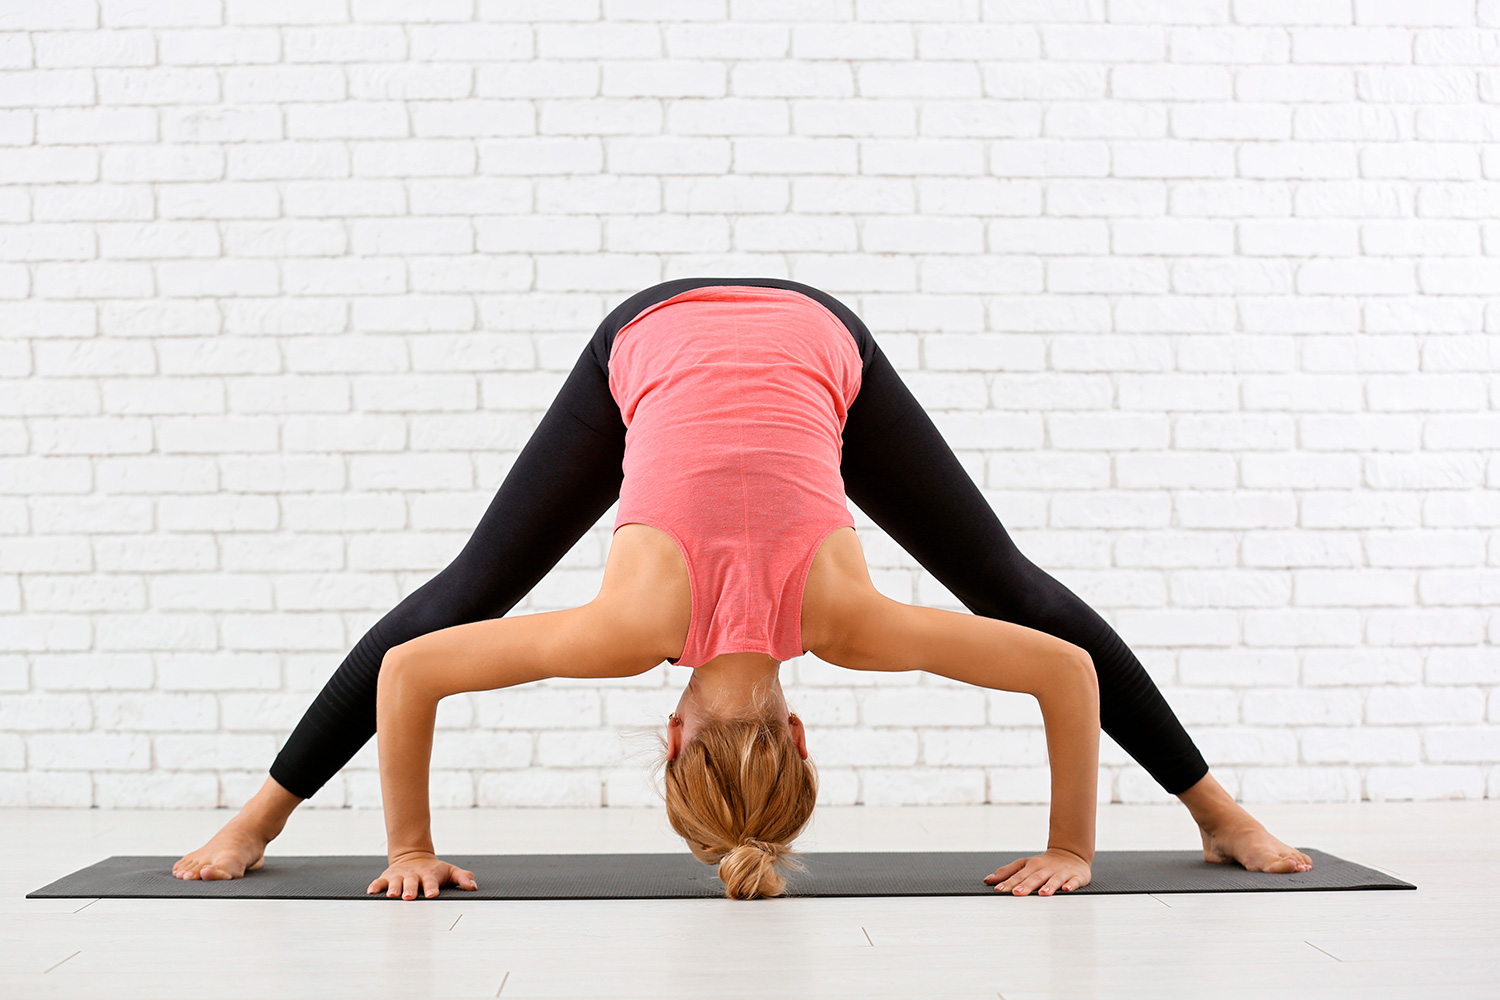 15 Great Yoga YouTube Channels for Free Yoga Videos